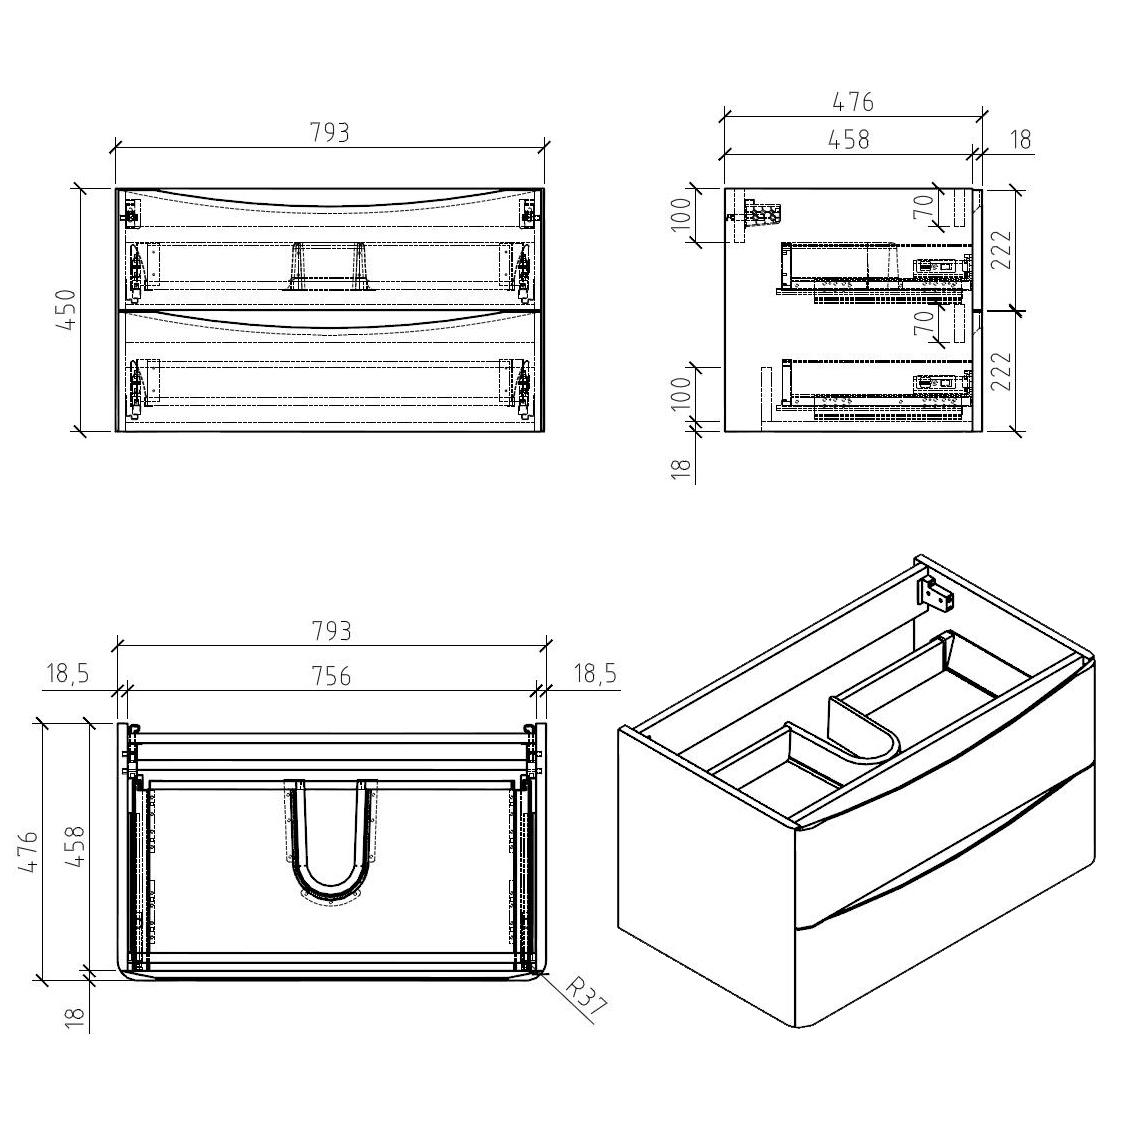 Smile 800 under basin cabinet - Drawing